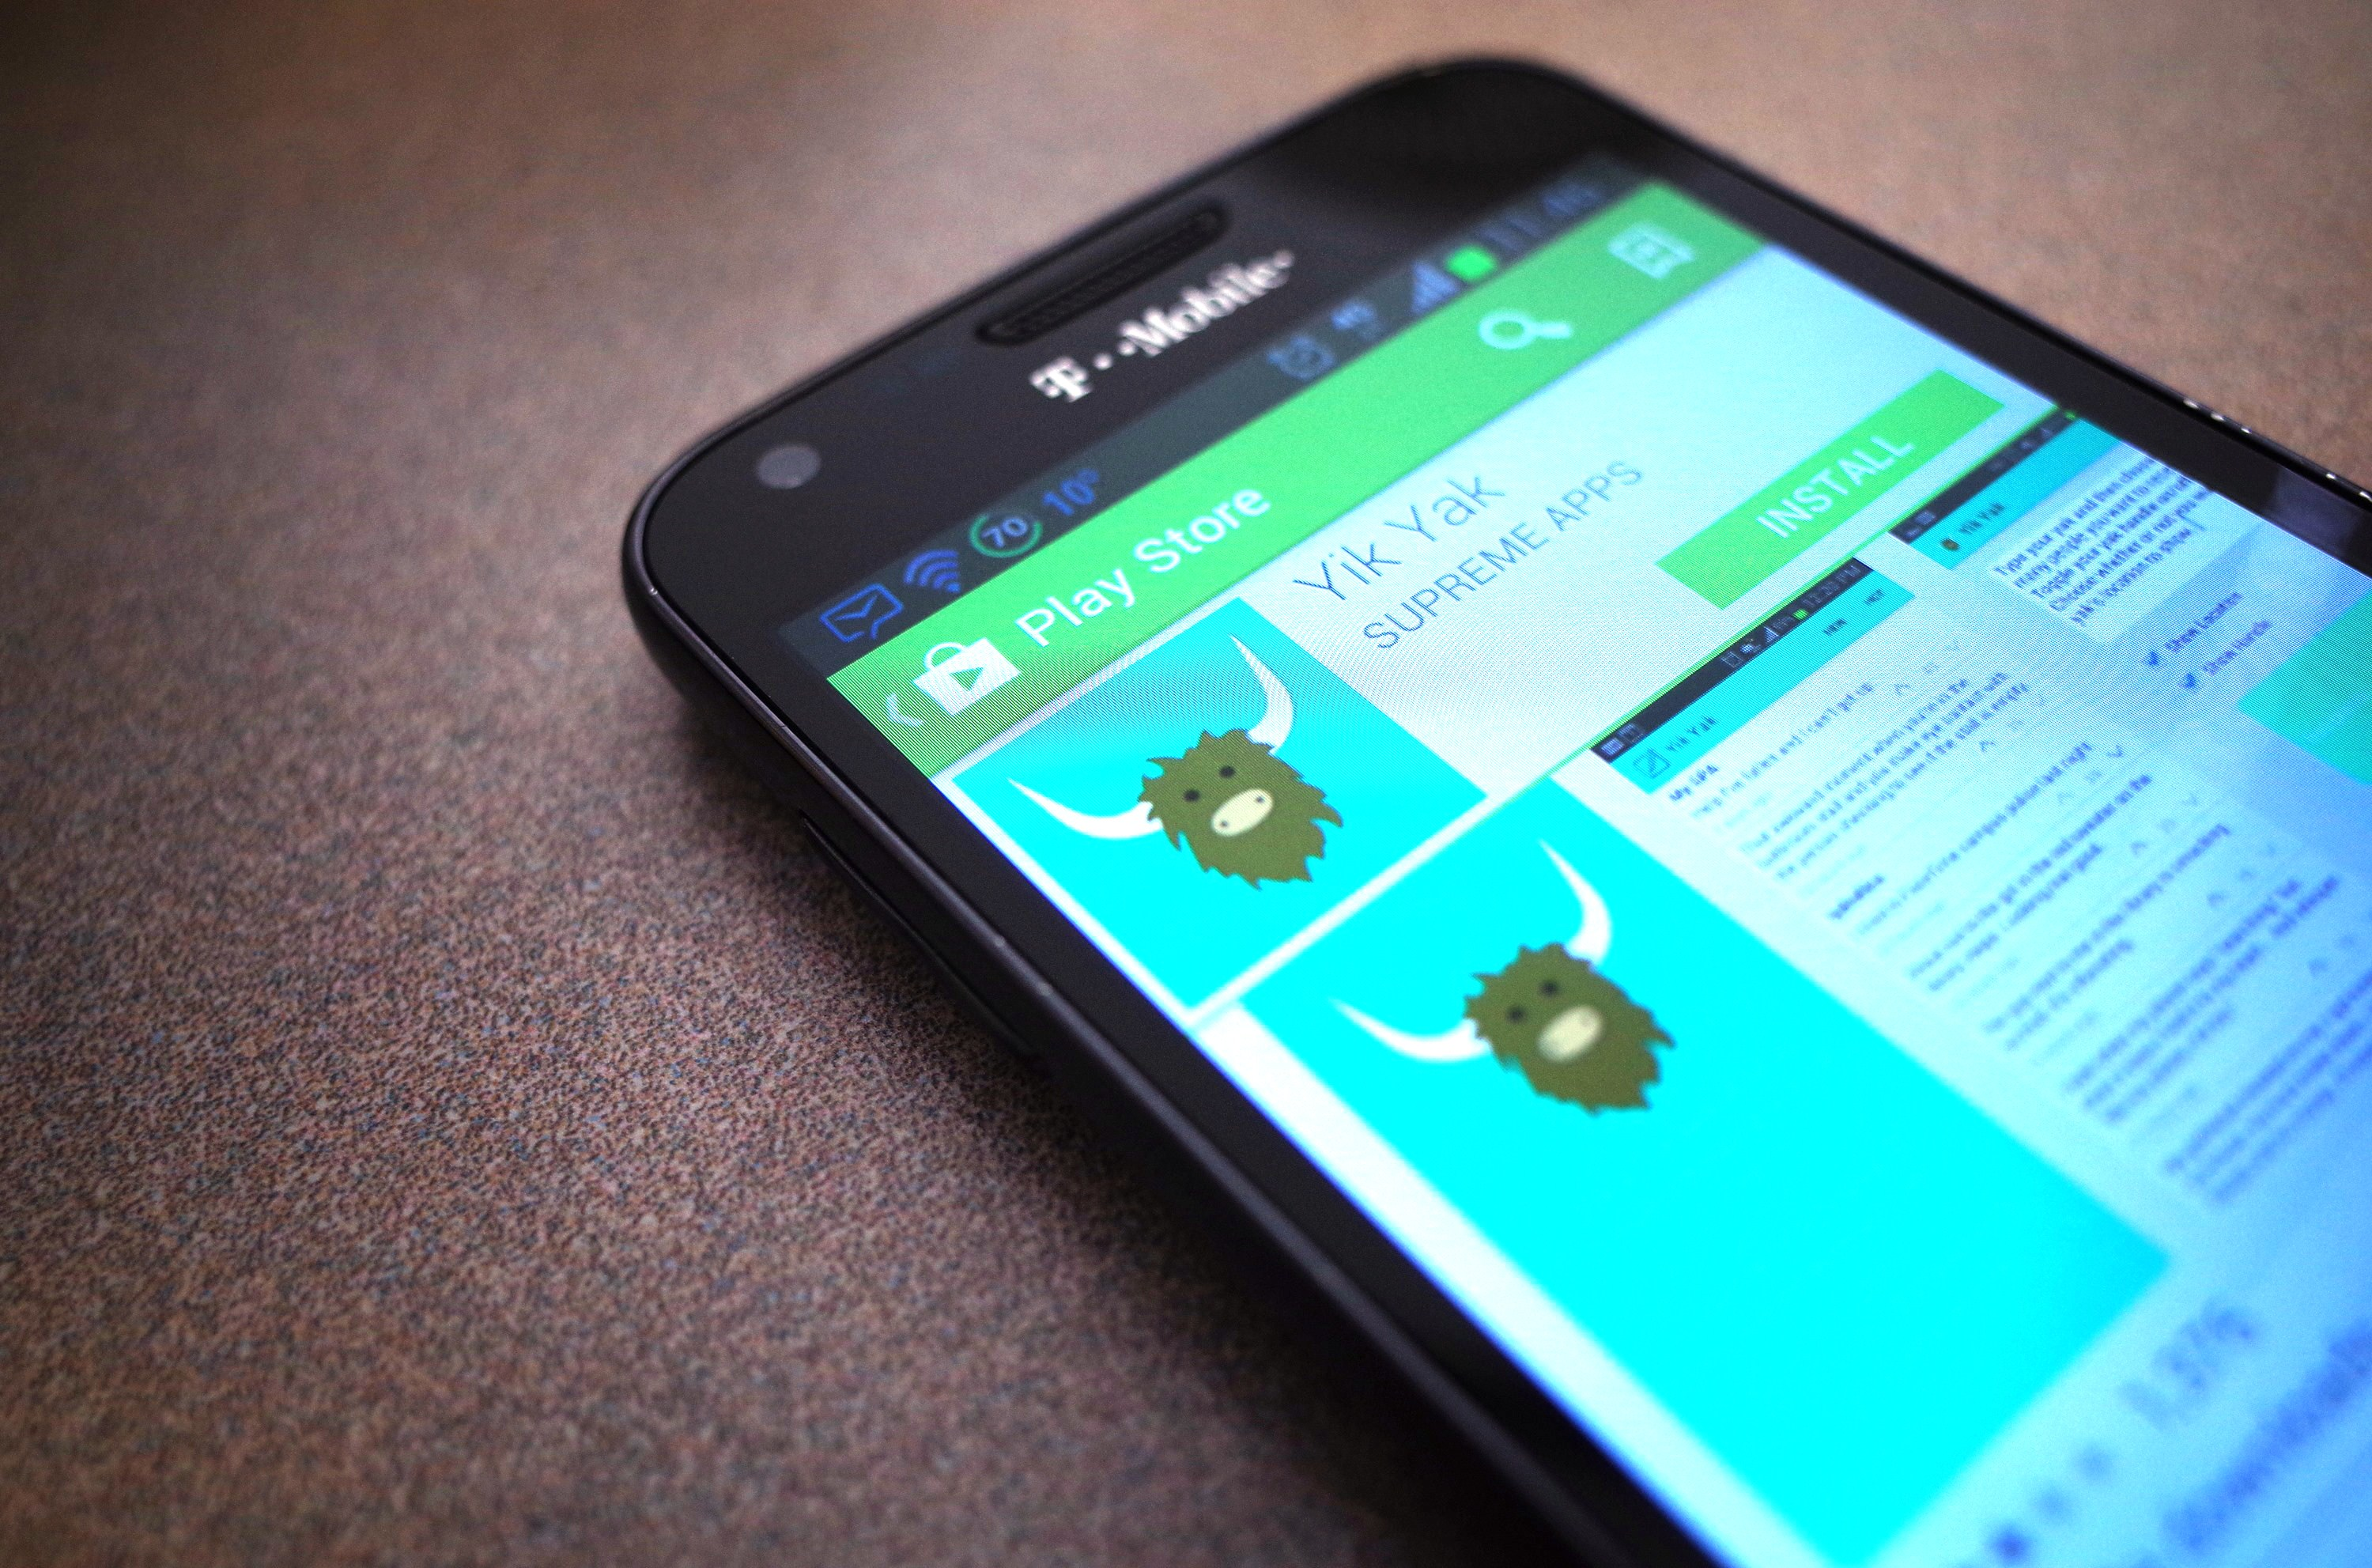 Yik yak tests photo-discussing feature on college campuses or all